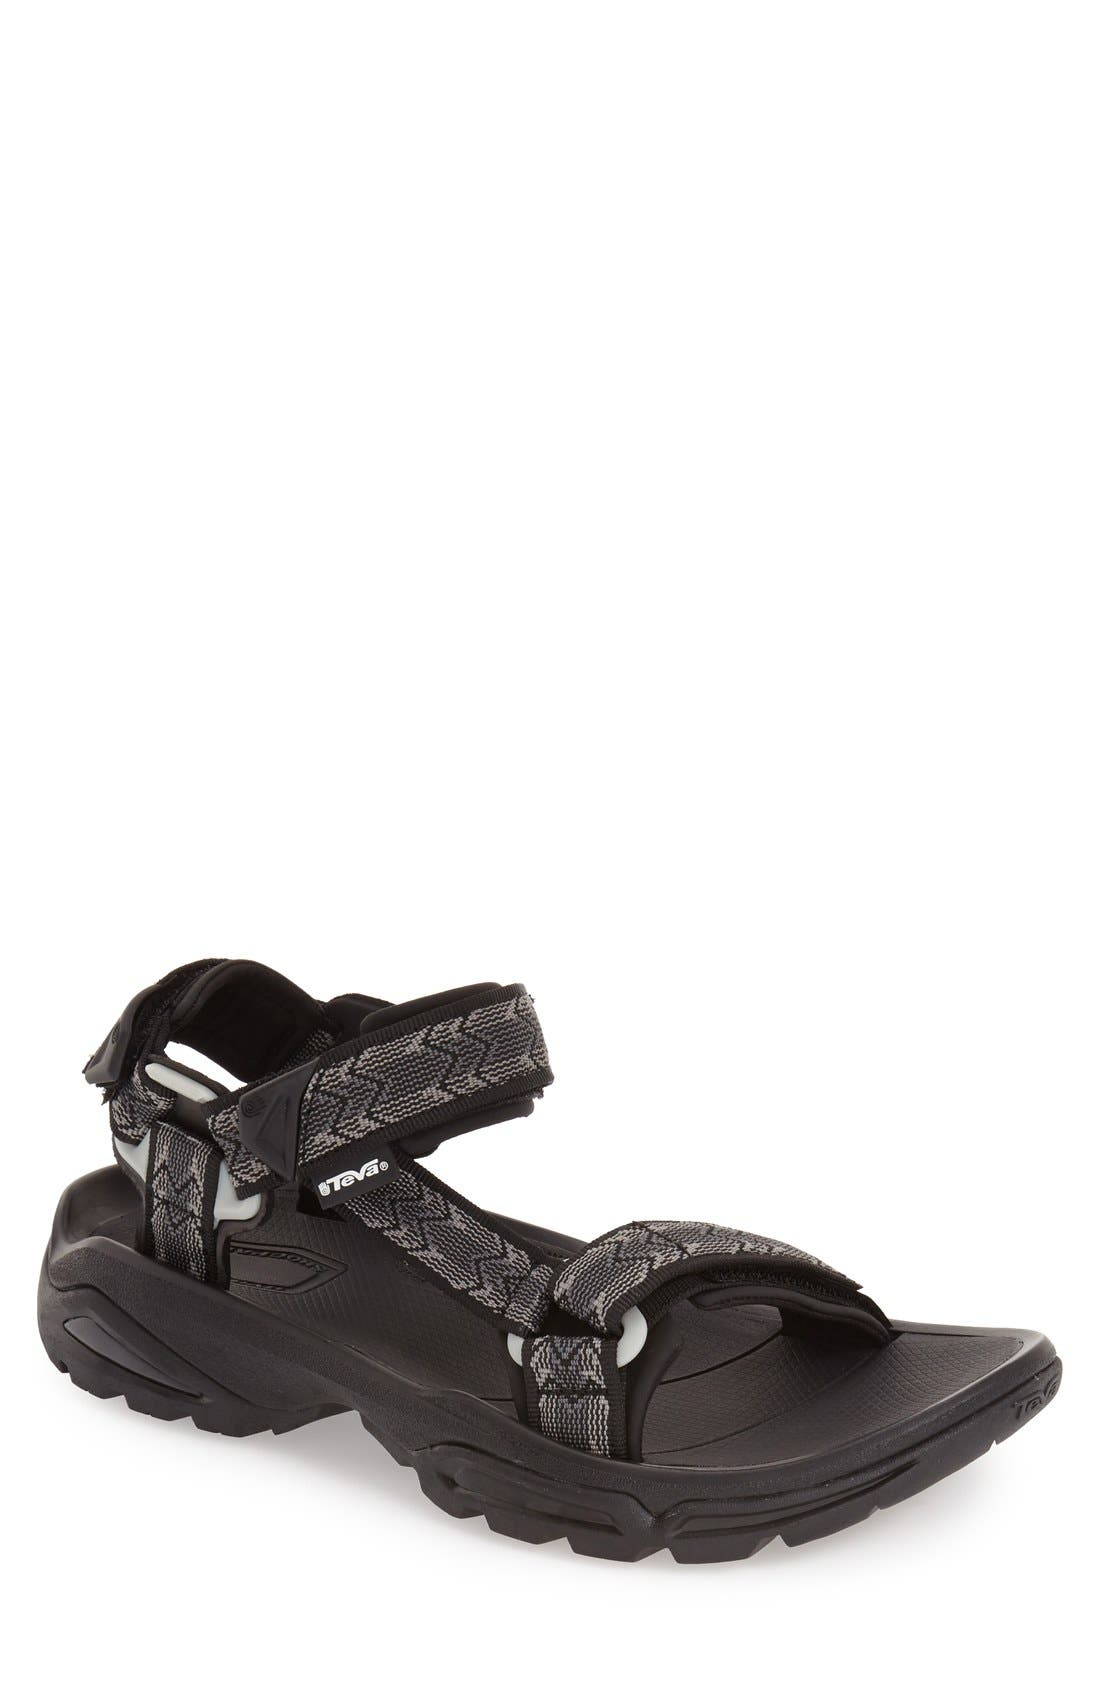 'Terra Fi 4' Sandal,                             Main thumbnail 1, color,                             CROSS TERRA BLACK